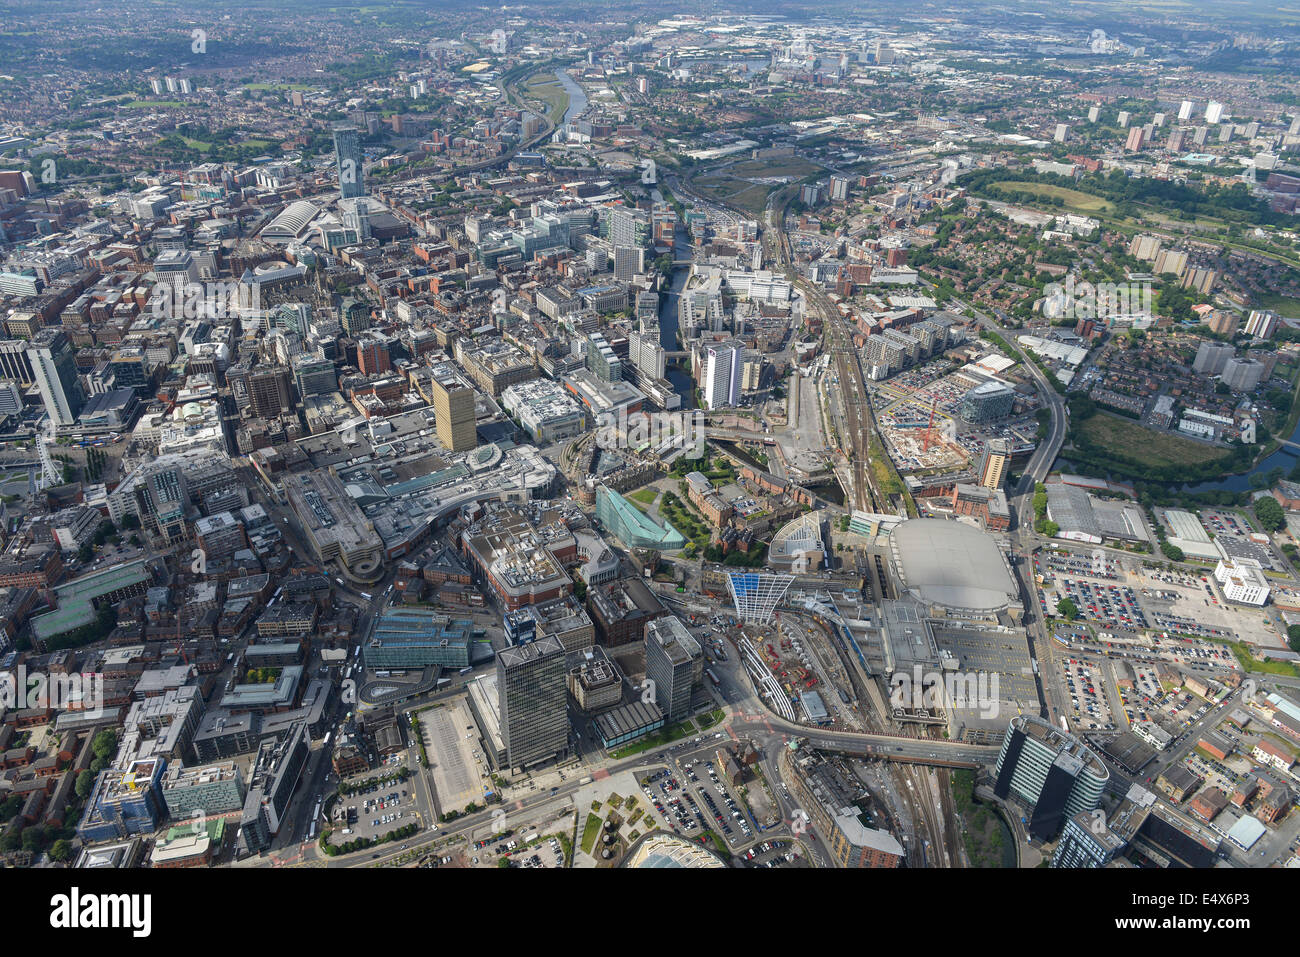 An aerial view looking south west from Victoria Station towards Manchester city centre. - Stock Image